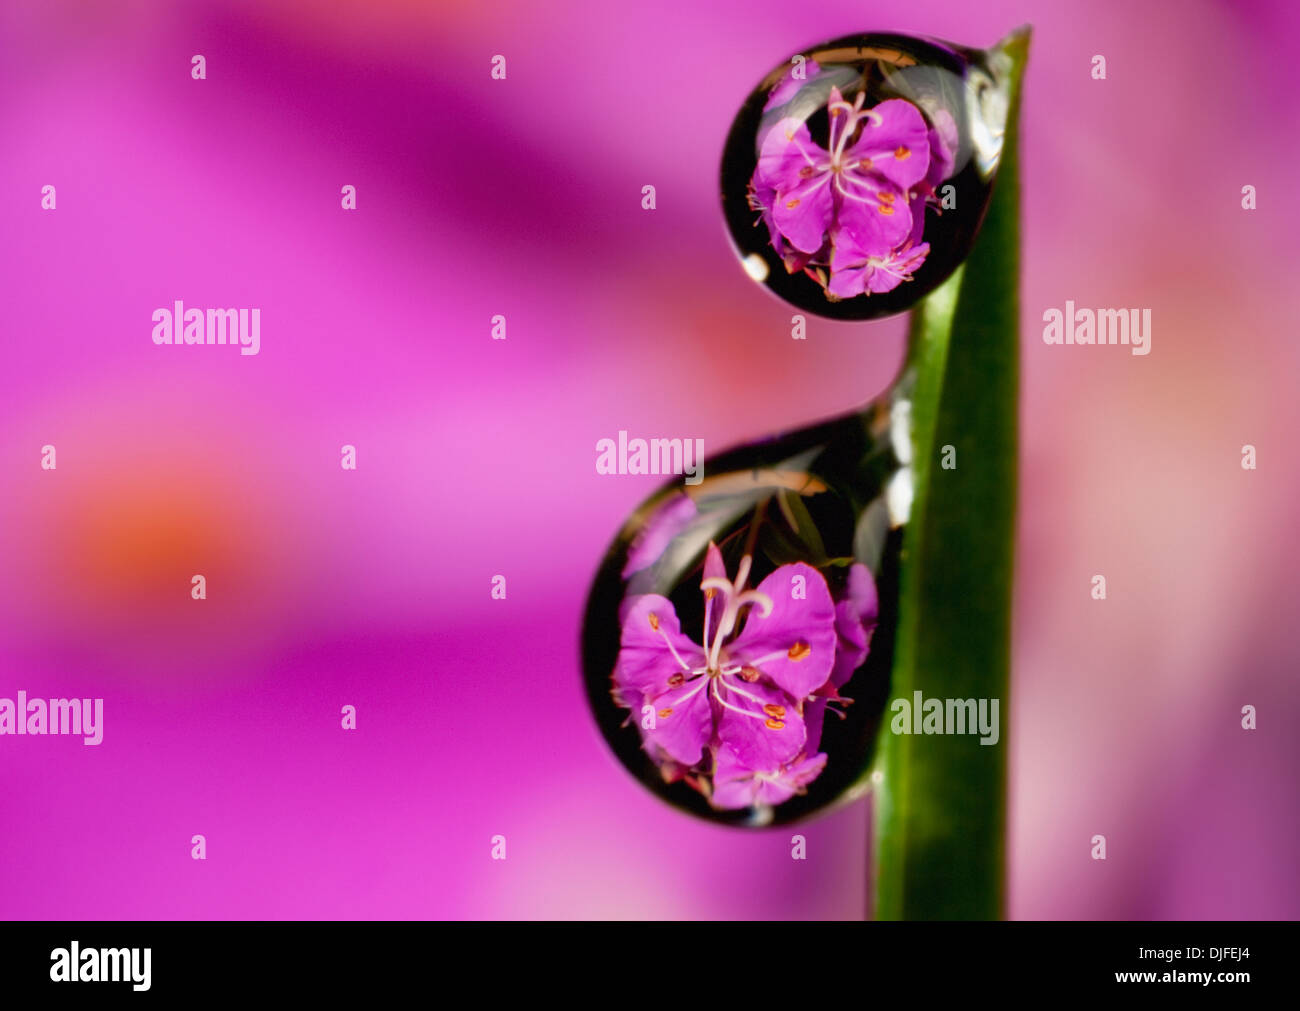 Extreme Macro View Of Fireweed Bloom Magnified Inverted And Reflected In Dew Drops Suspended From A Blade Of Grass - Stock Image